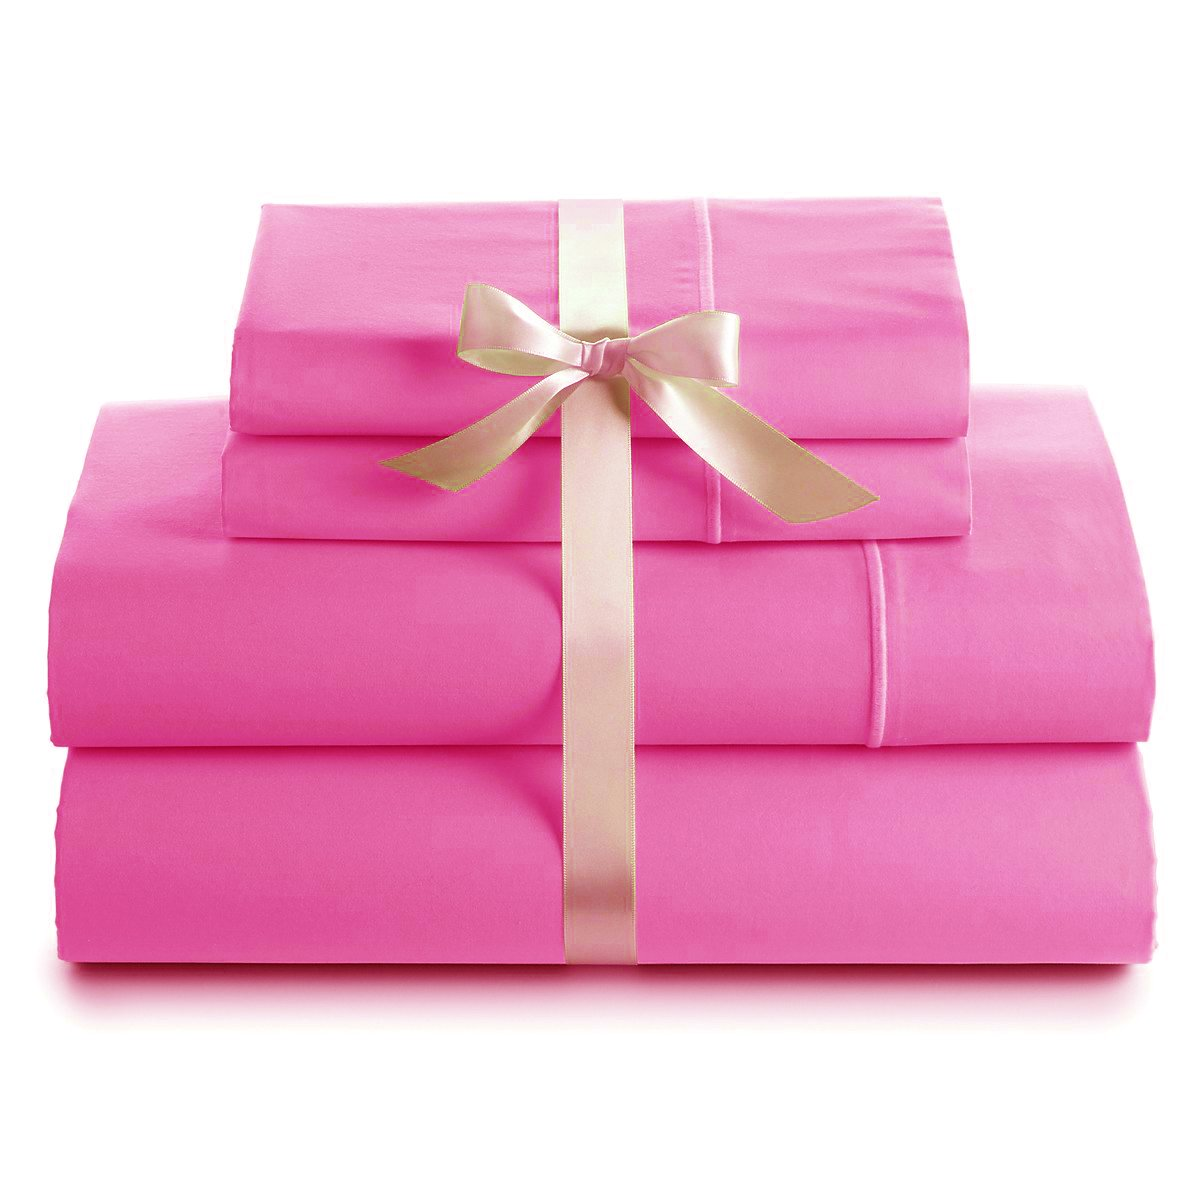 Amazon.com: Pink - Sheet & Pillowcase Sets / Sheets & Pillowcases